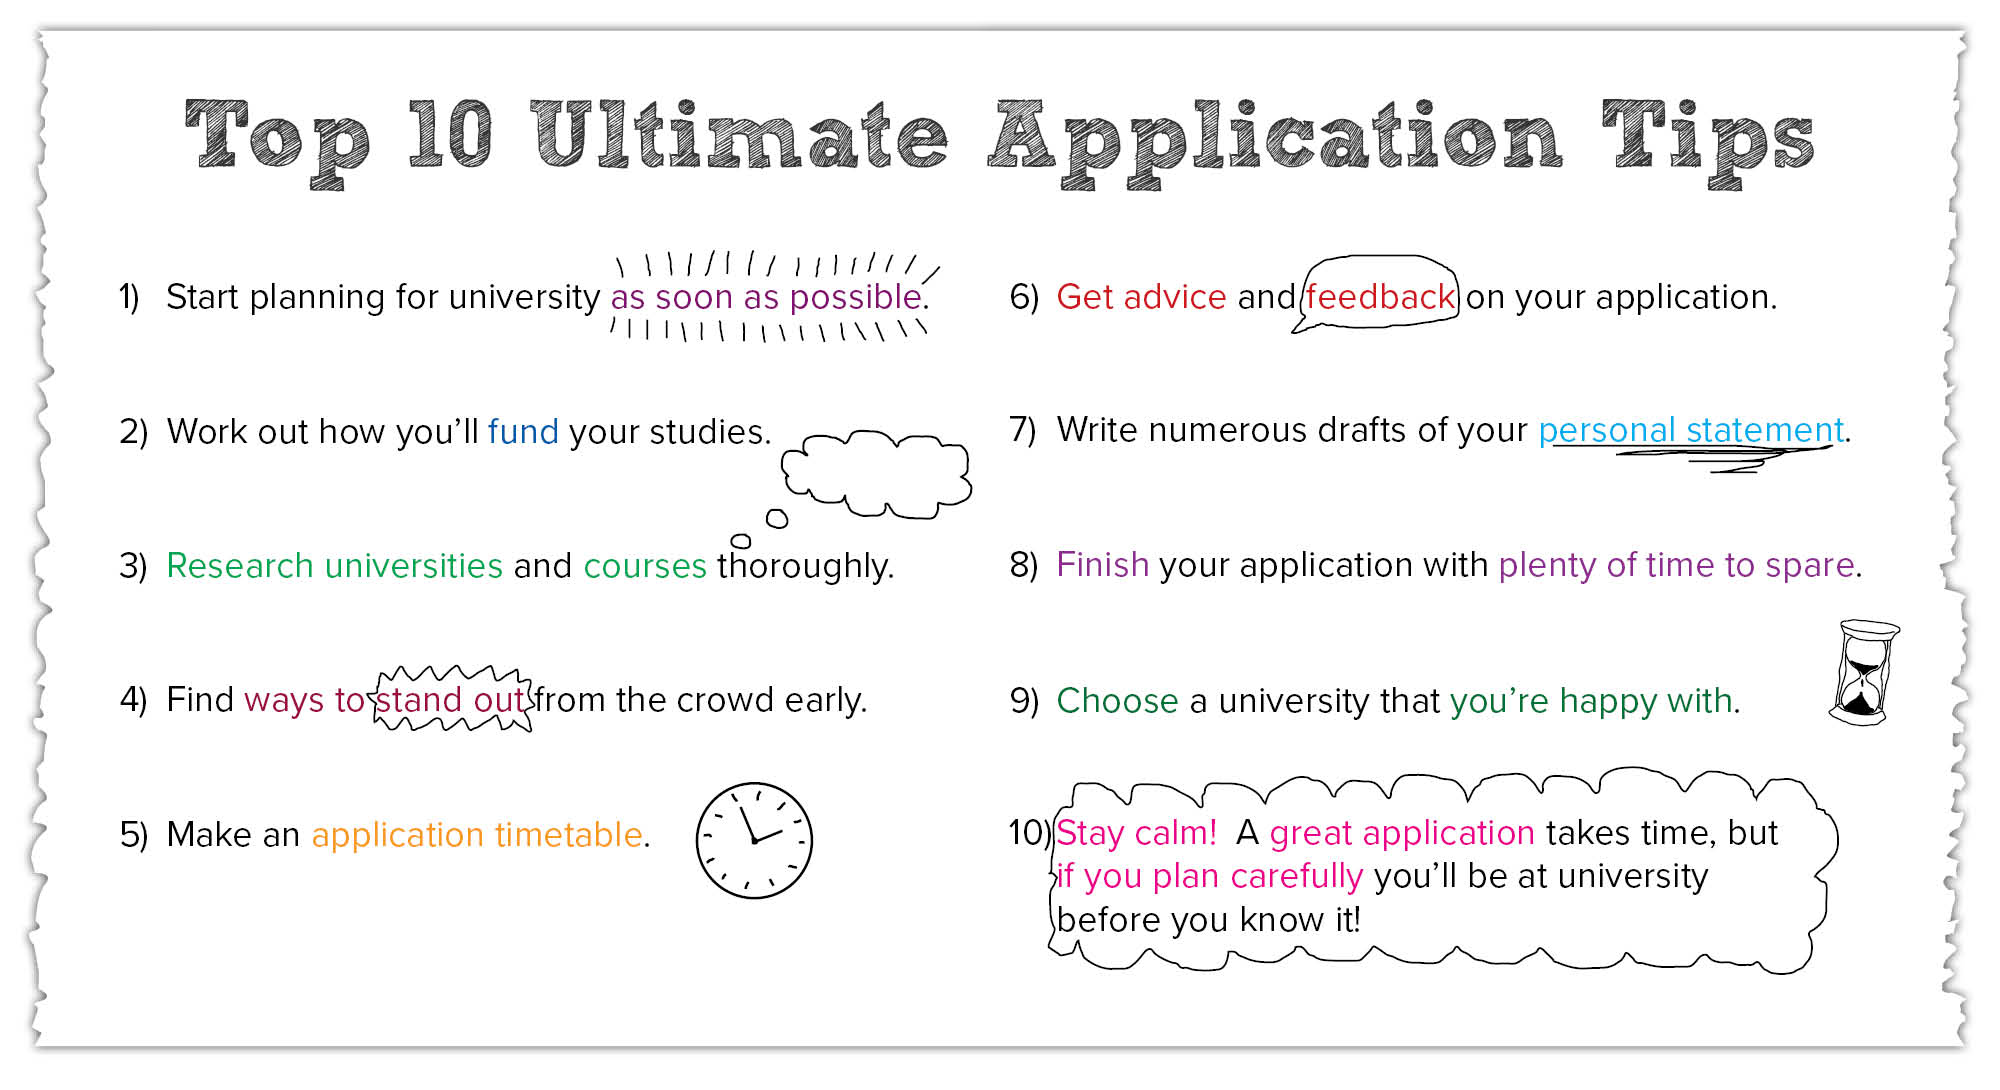 Top 10 Ultimate Application Tips